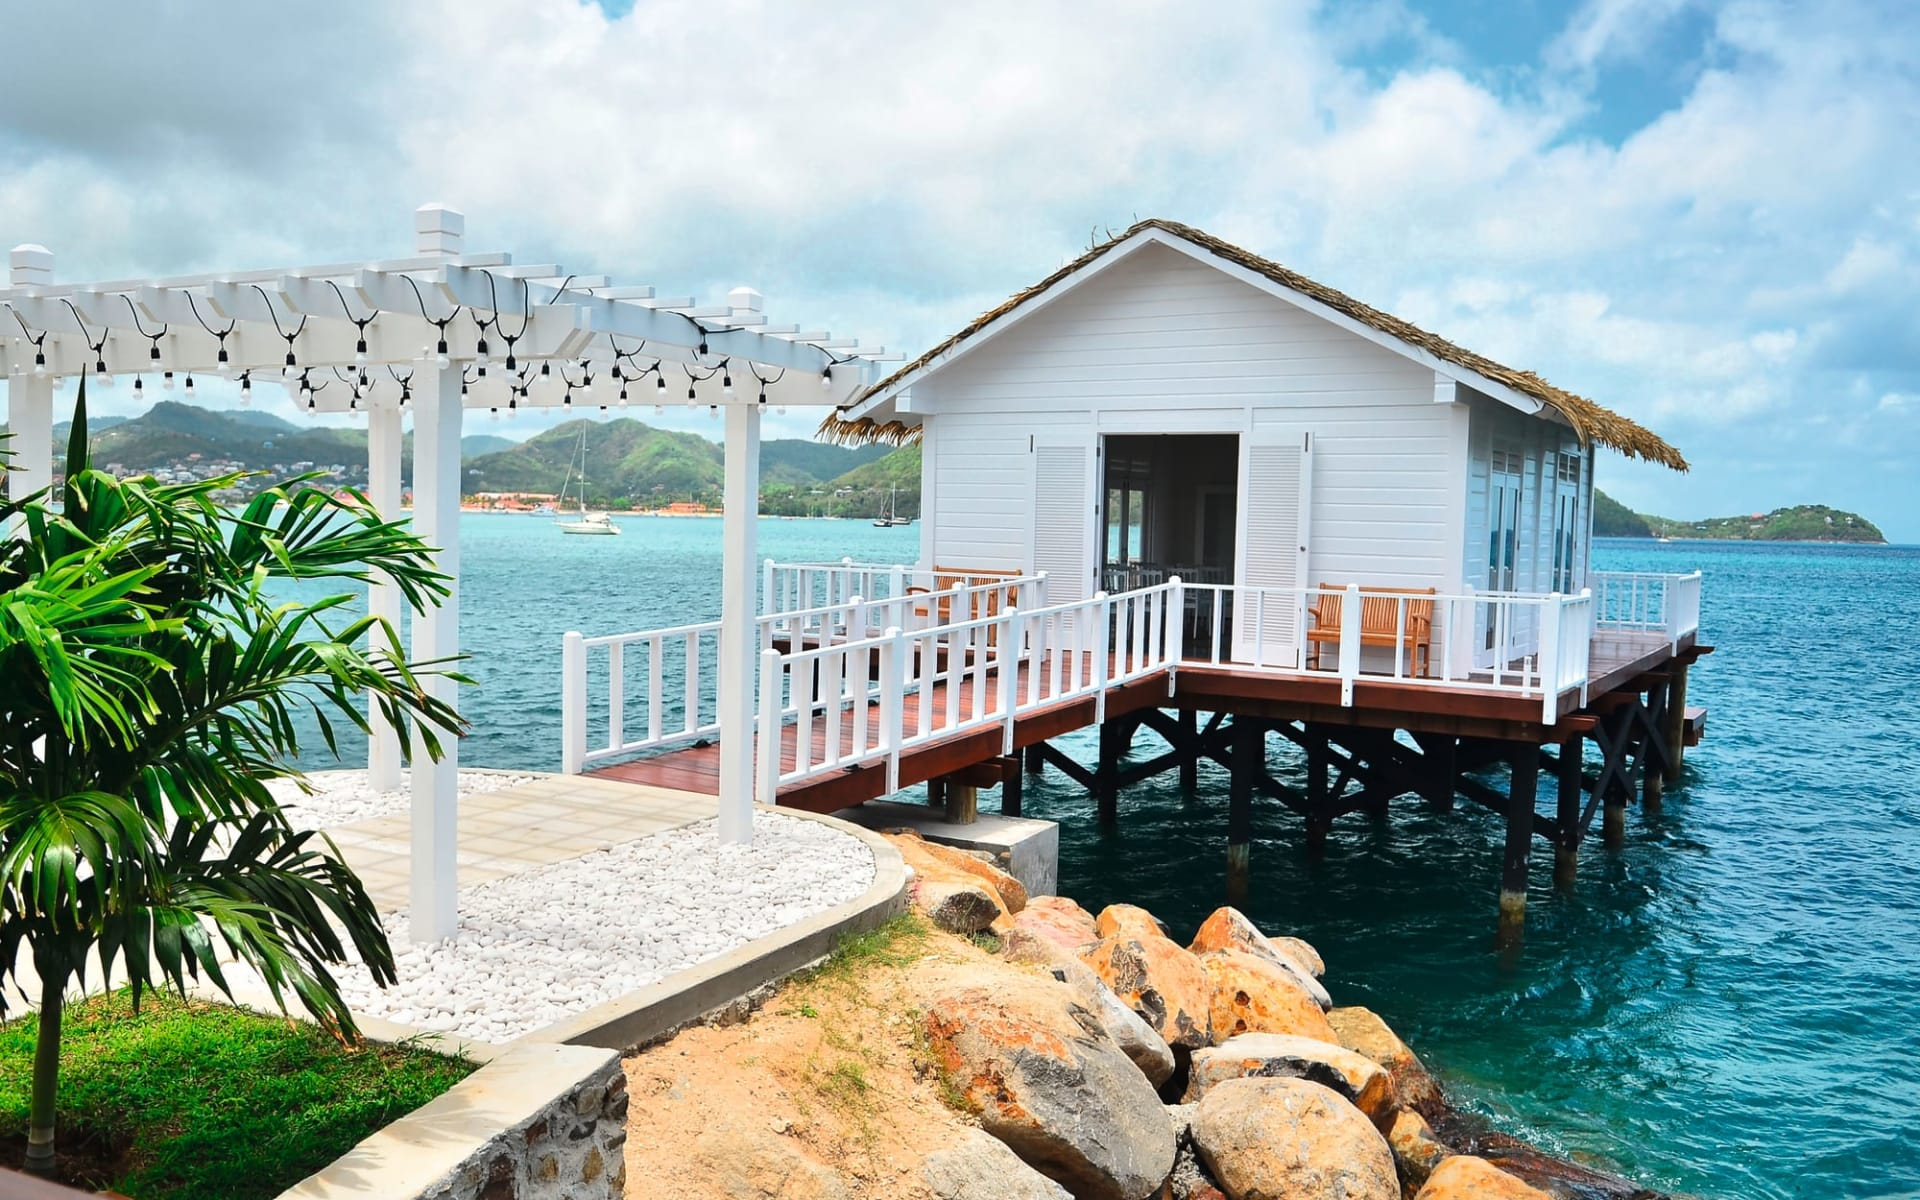 Sandals Grande St. Lucian Spa & Beach Resort in Gros Islet:  Sandals Grande St. Lucian (2)